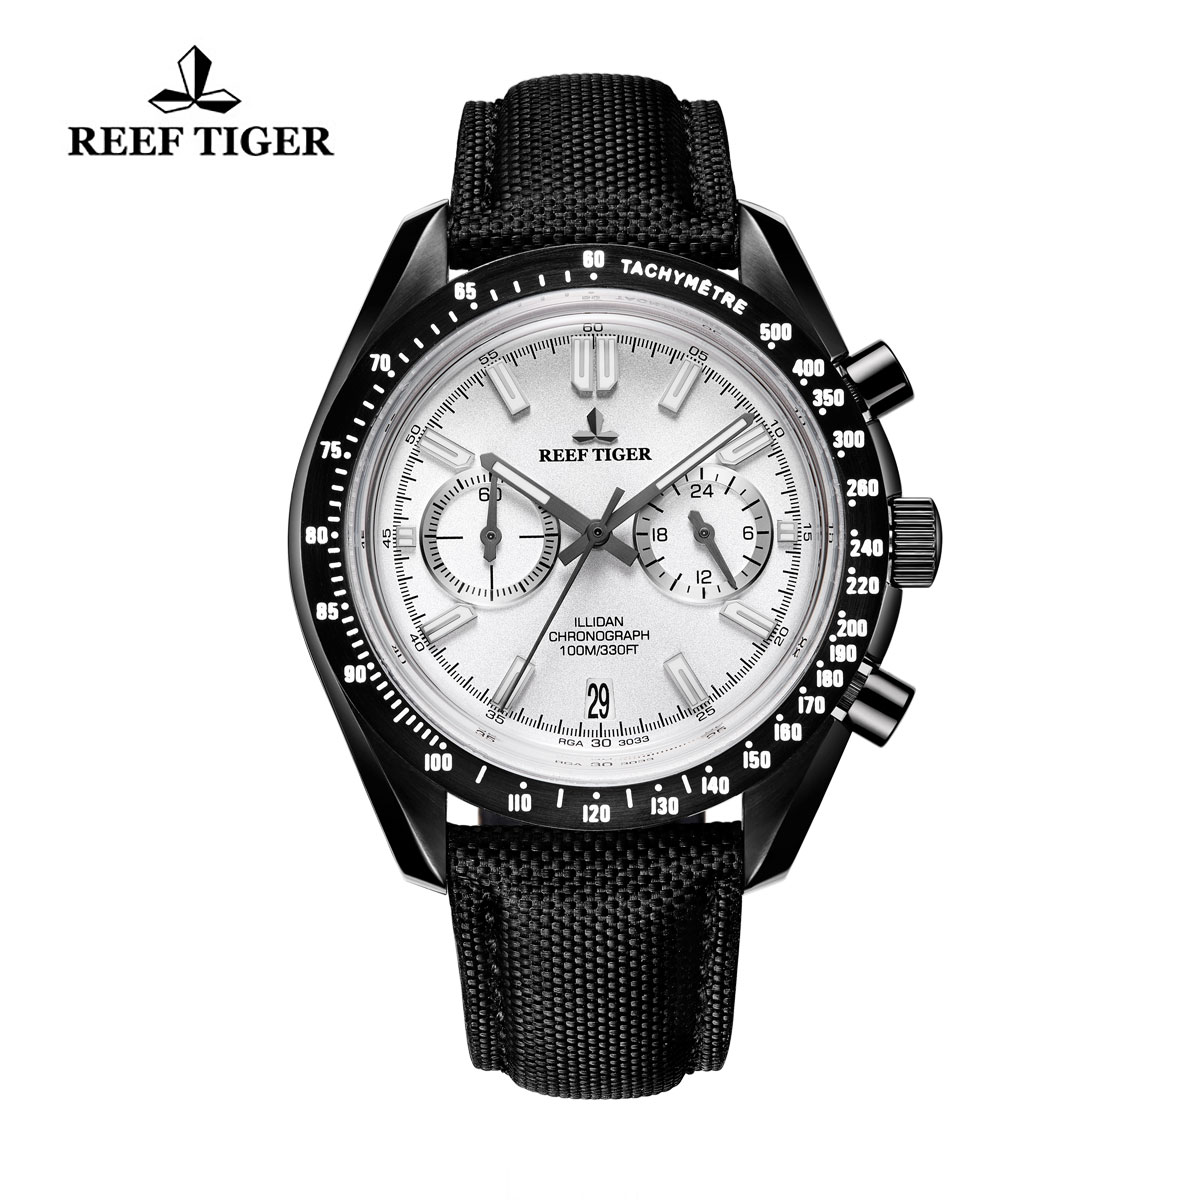 Reef Tiger Illidan Quartz Watches Chronograph PVD Case White Dial Leather Strap Watches RGA3033-BWB